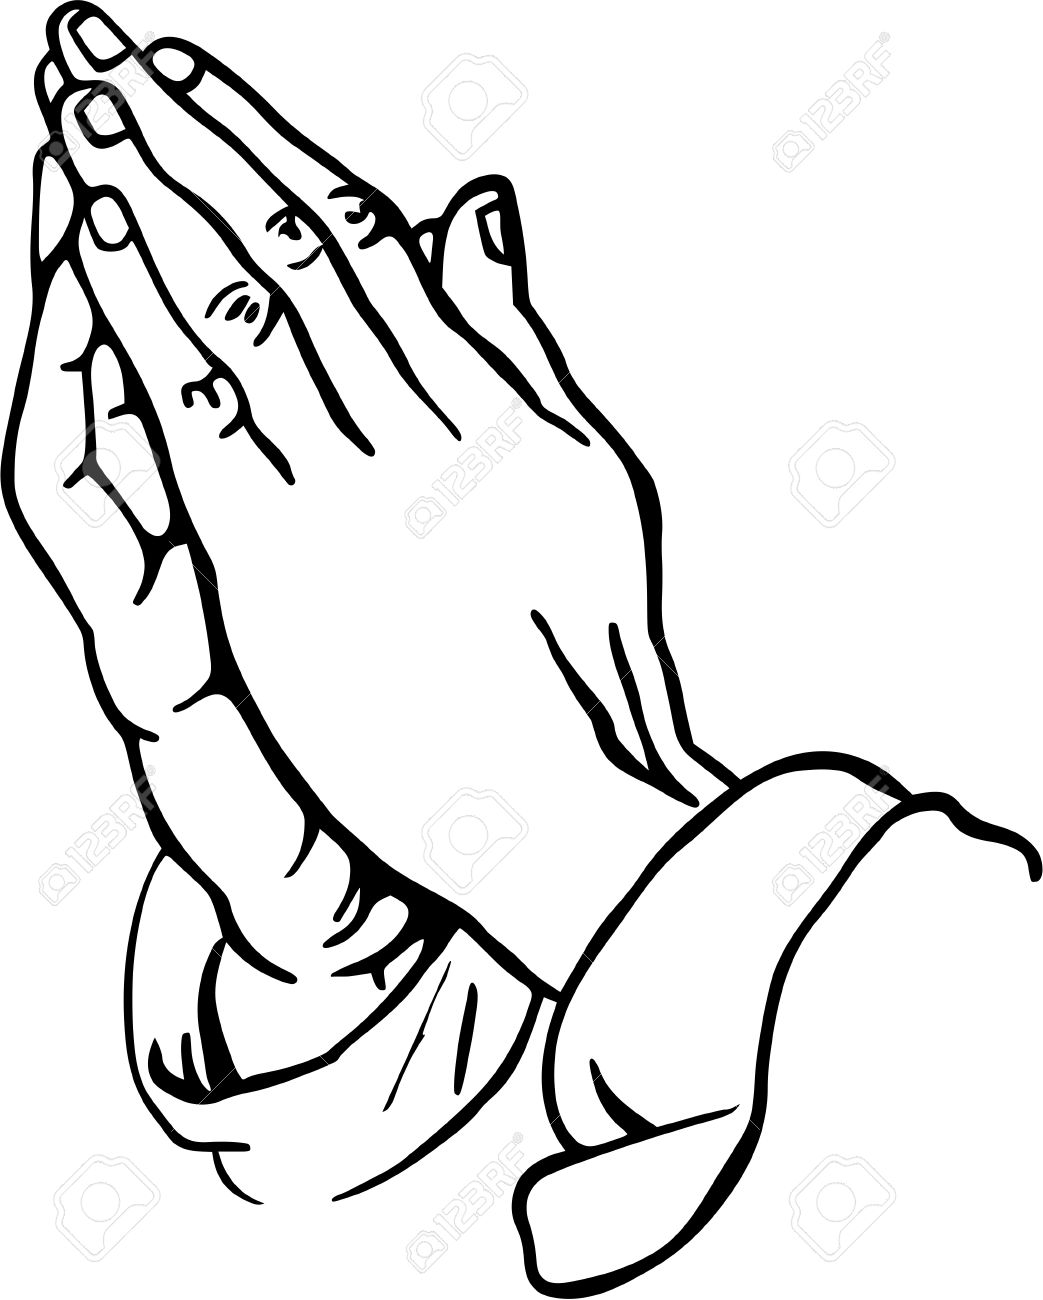 1043x1300 Exquisite Free Images Of Praying Hands Hand Child Prayer Clip Art